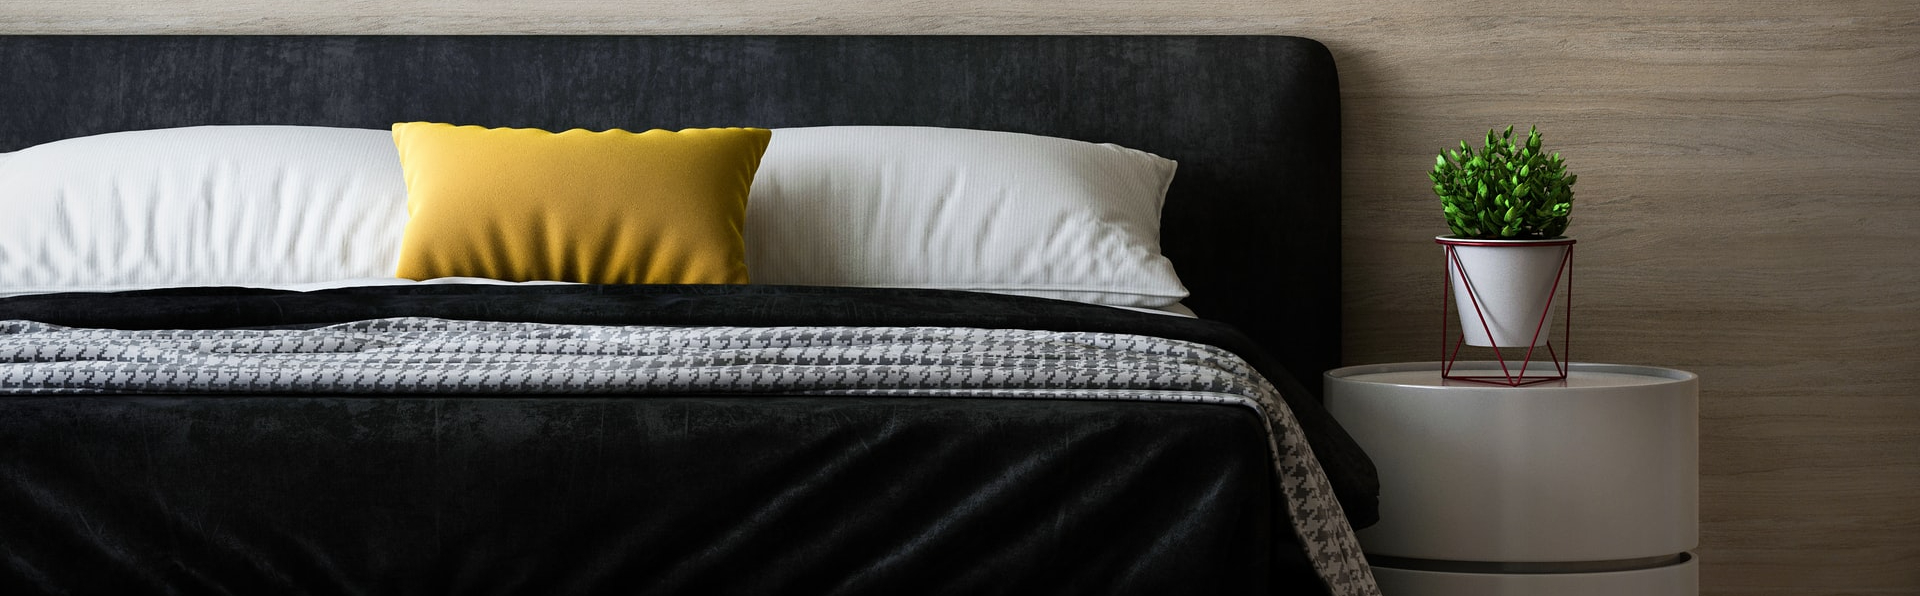 do I need to throw out my mattress after bed bugs?